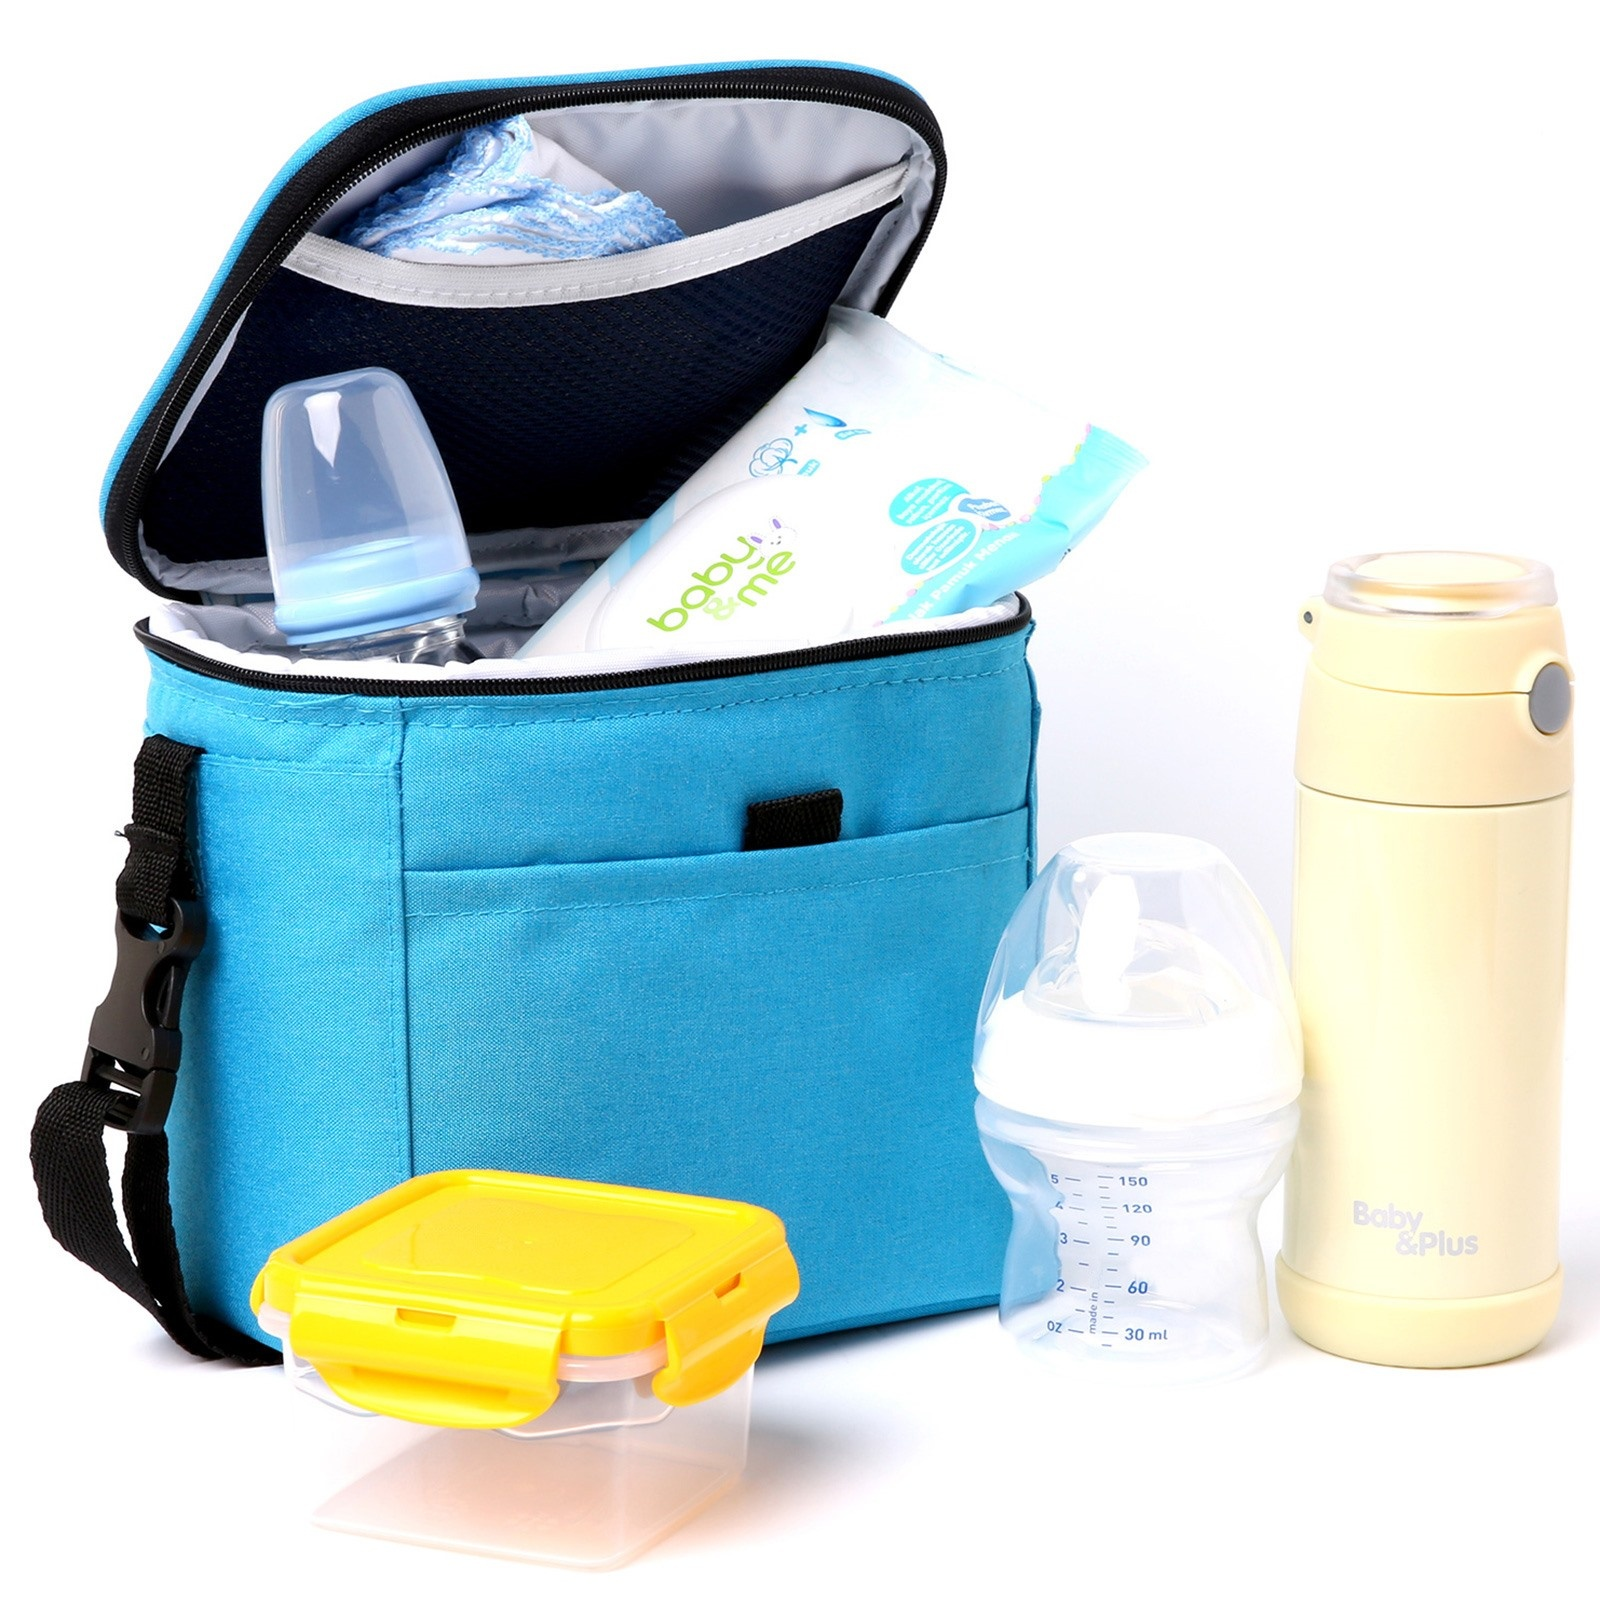 Ebebek Baby&plus Thermal Food And Baby Bottle Protector Care Bag